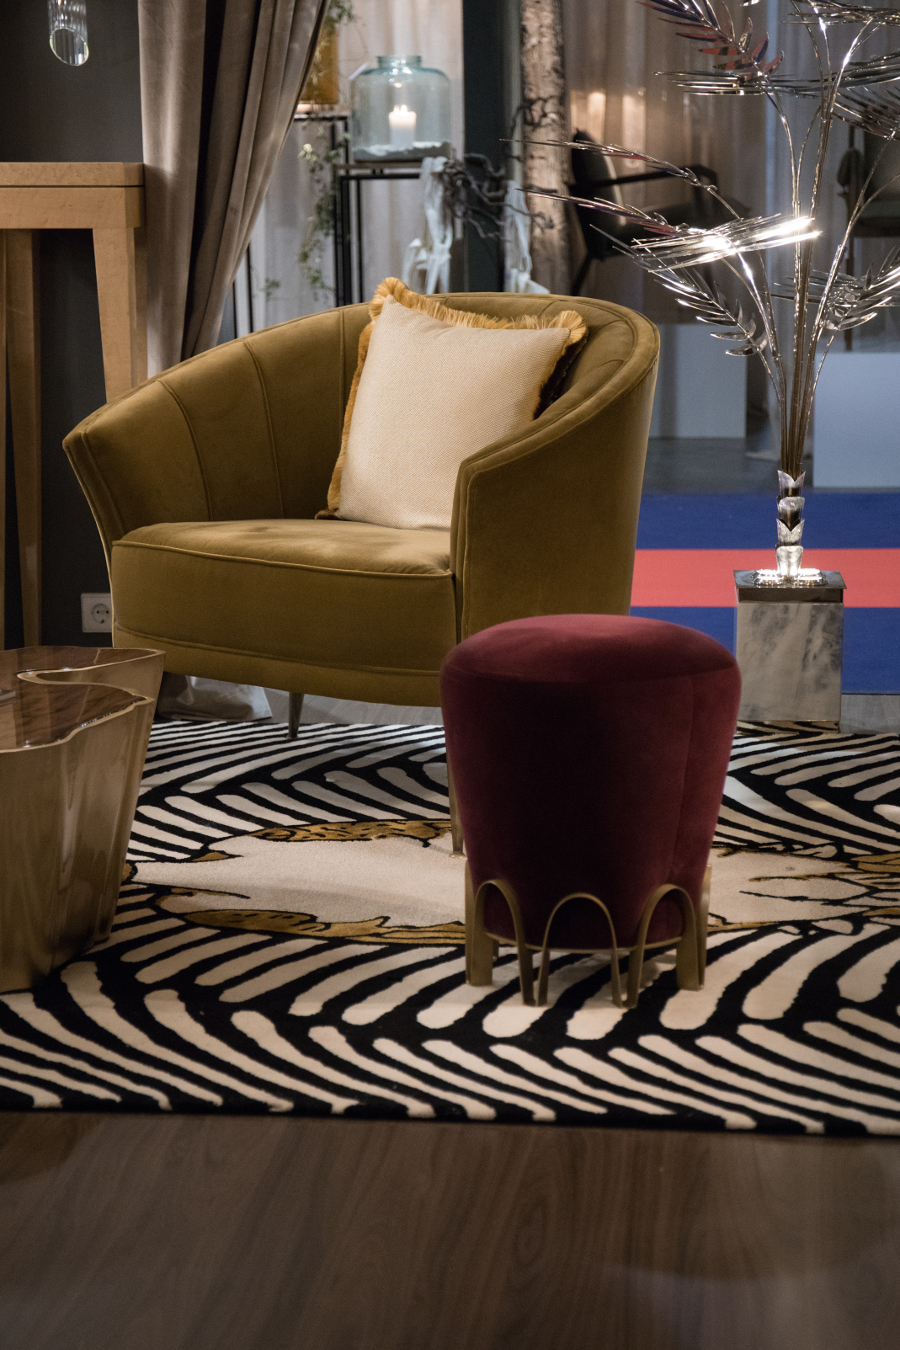 Feature products are a must for the perfect room decors! Have unique design piece ready to blow everyone away! maison et objet Maison et Objet Sept: The Best Fall Trends For Upholstery Fabrics Maison et Objet September The Best Fall Trends For Your Upholstery Fabrics 17